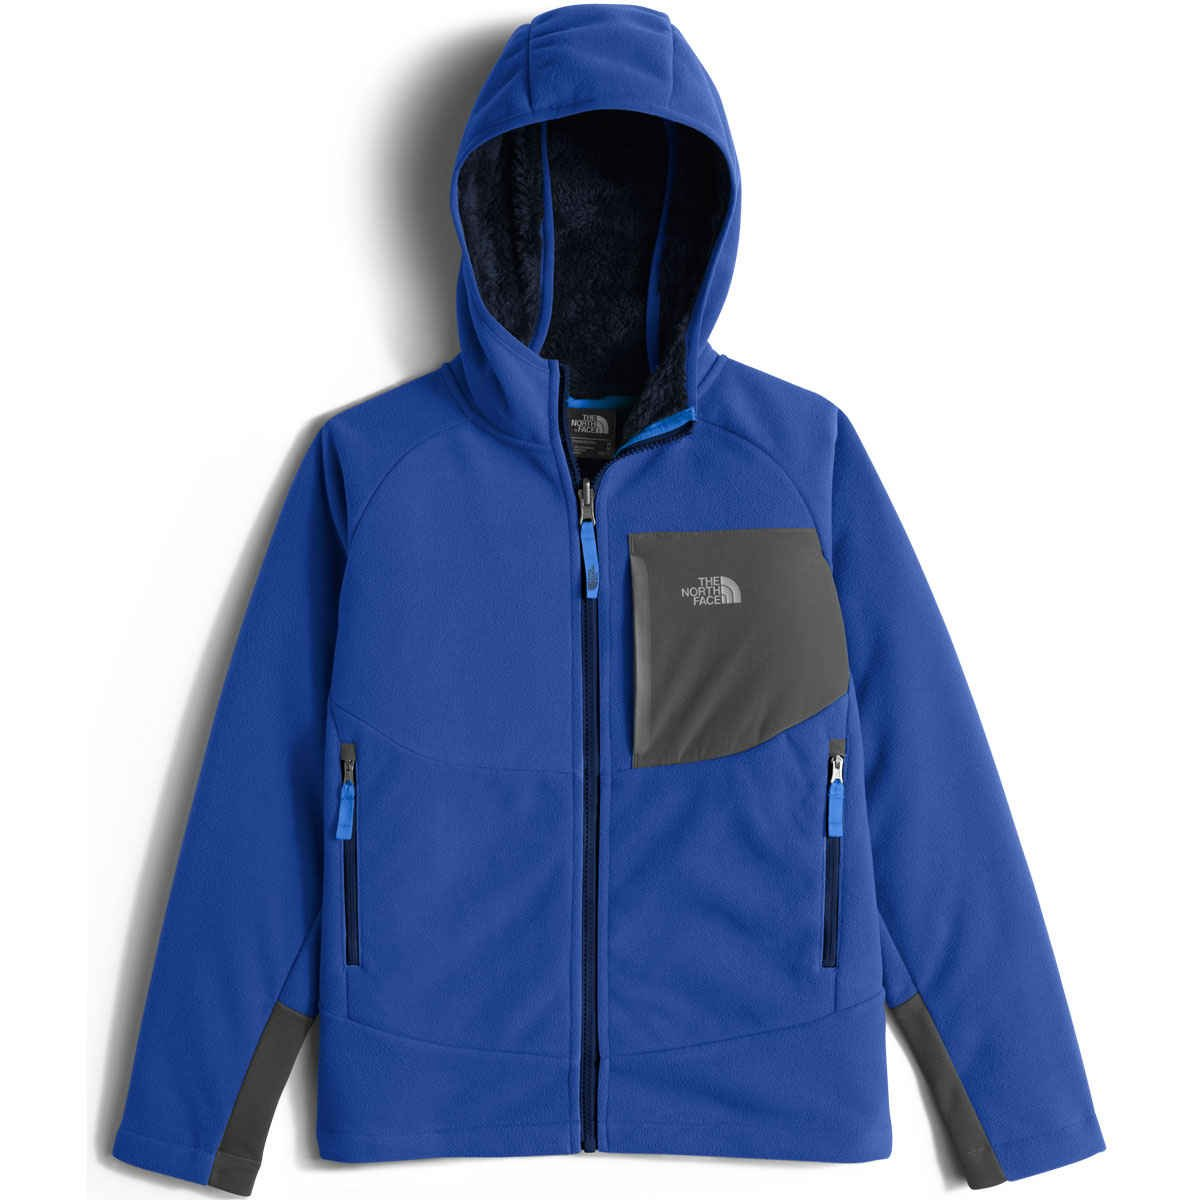 The North Face Chimborazo Kids Hoodie - Small/Honor Blue by The North Face